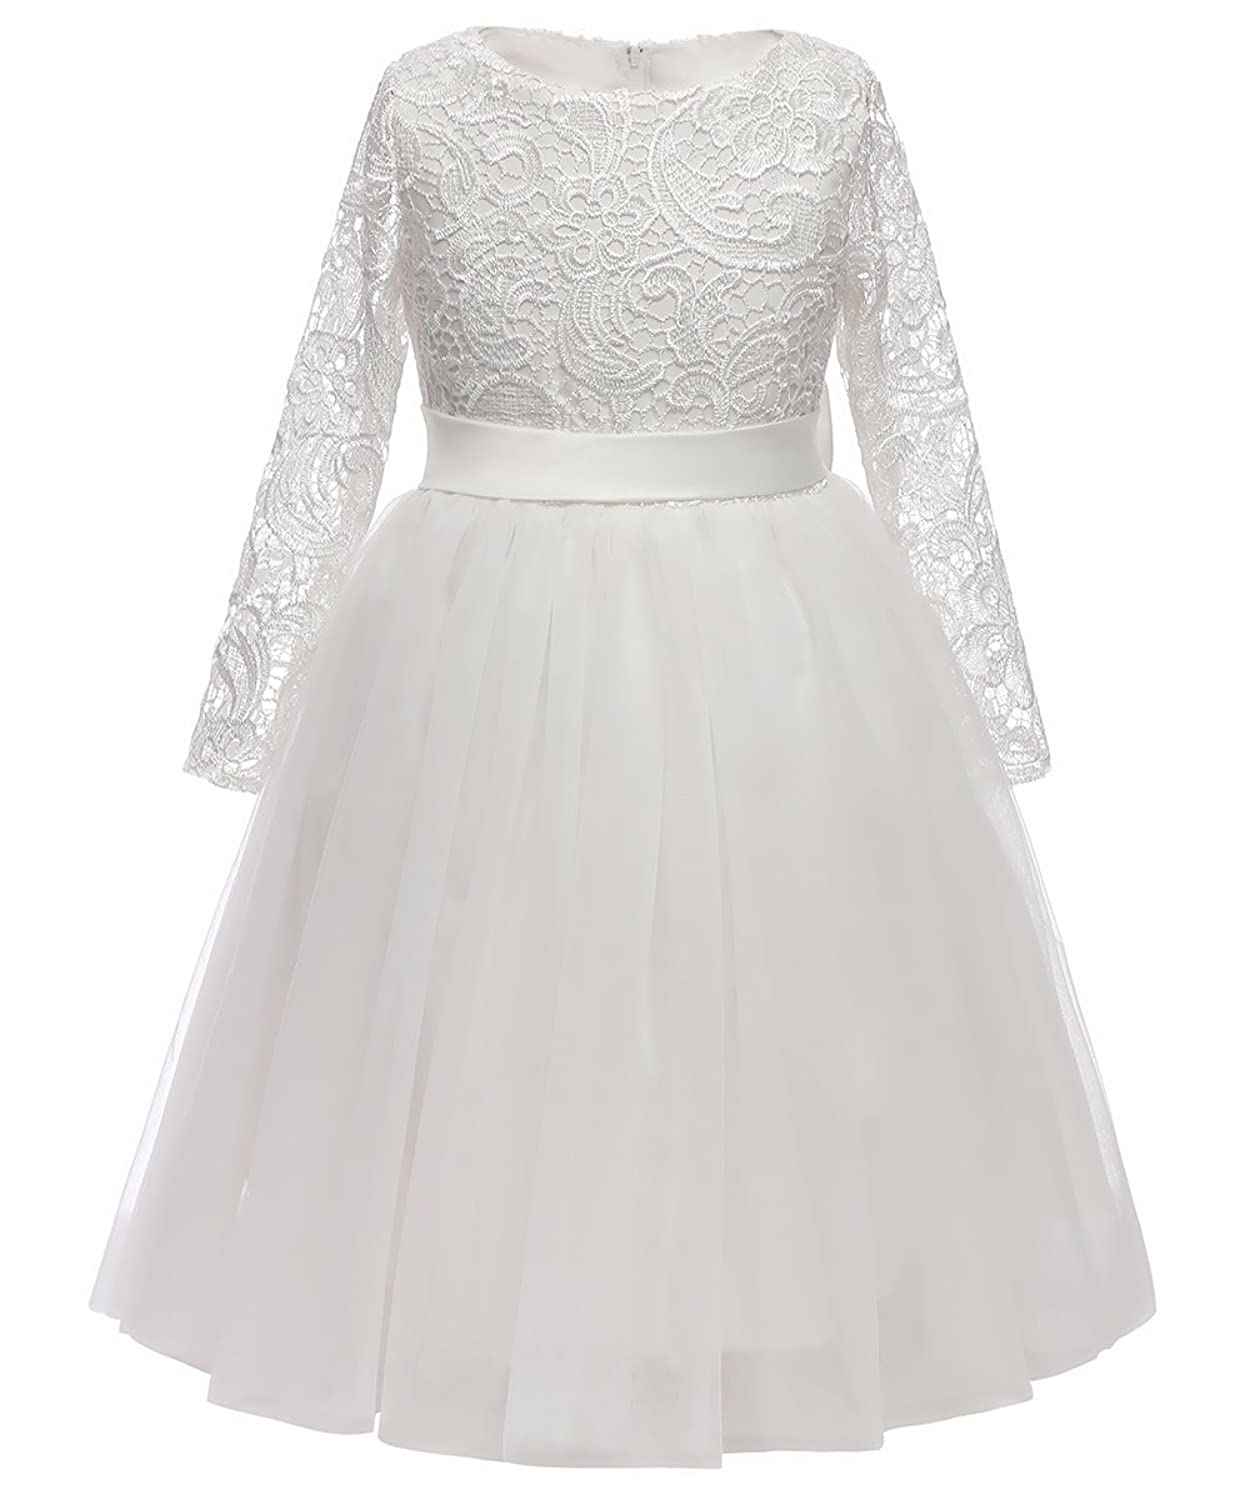 c4797889e Long sleeves flower girl dress. Tea length / removable bow / lace top with  5 layers tulle skirt. Made of soft lace,100% cotton lining,soft and  comfortable